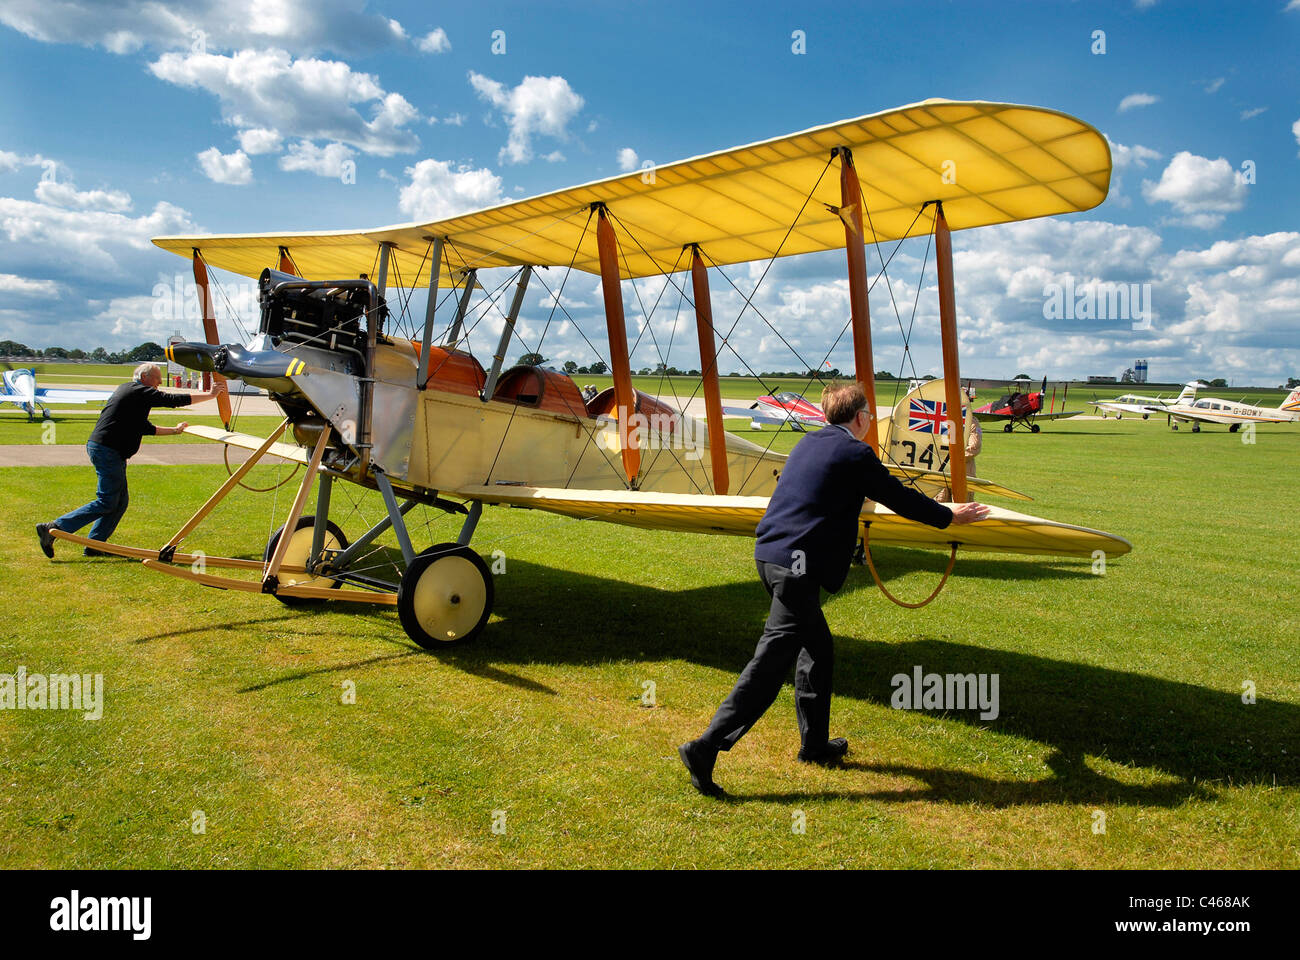 A replica Be-2C WW1 vintage biplane is wheeled out at Sywell Aerodrome, Northamptonshire, 1-06-2011. - Stock Image